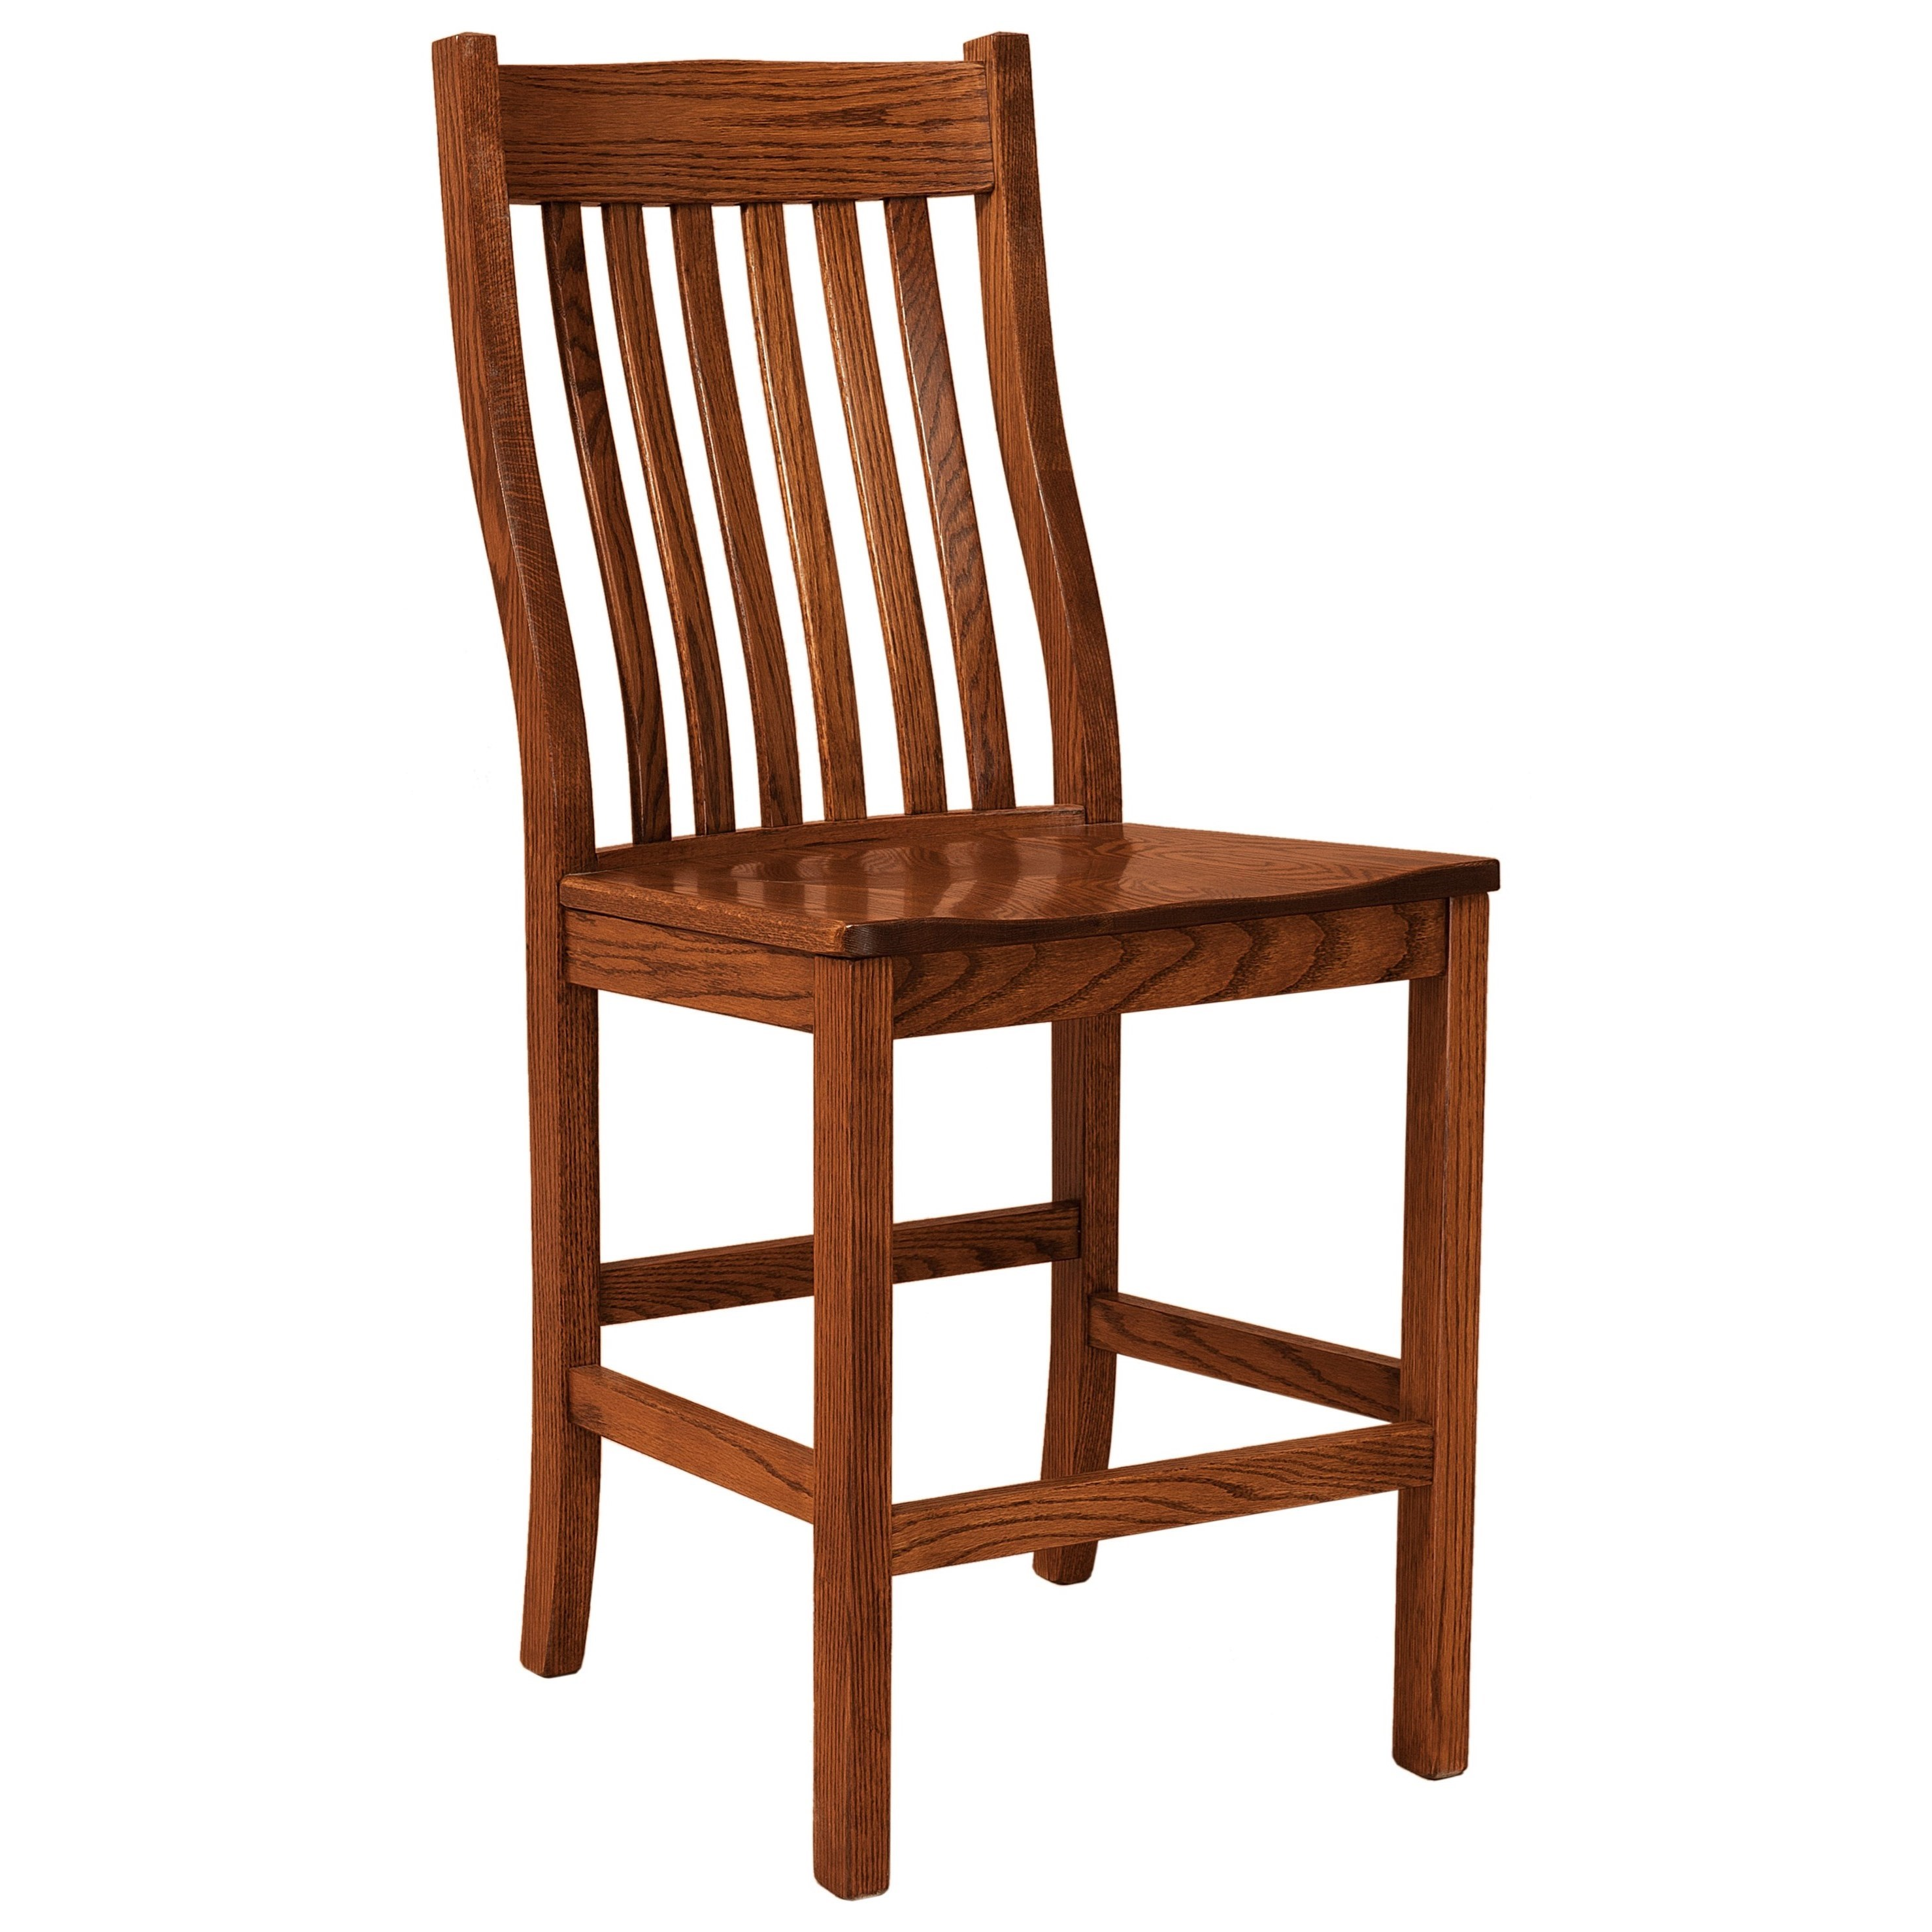 Sullivan Stationary Counter Height Stool - Wood Seat by F&N Woodworking at Wayside Furniture